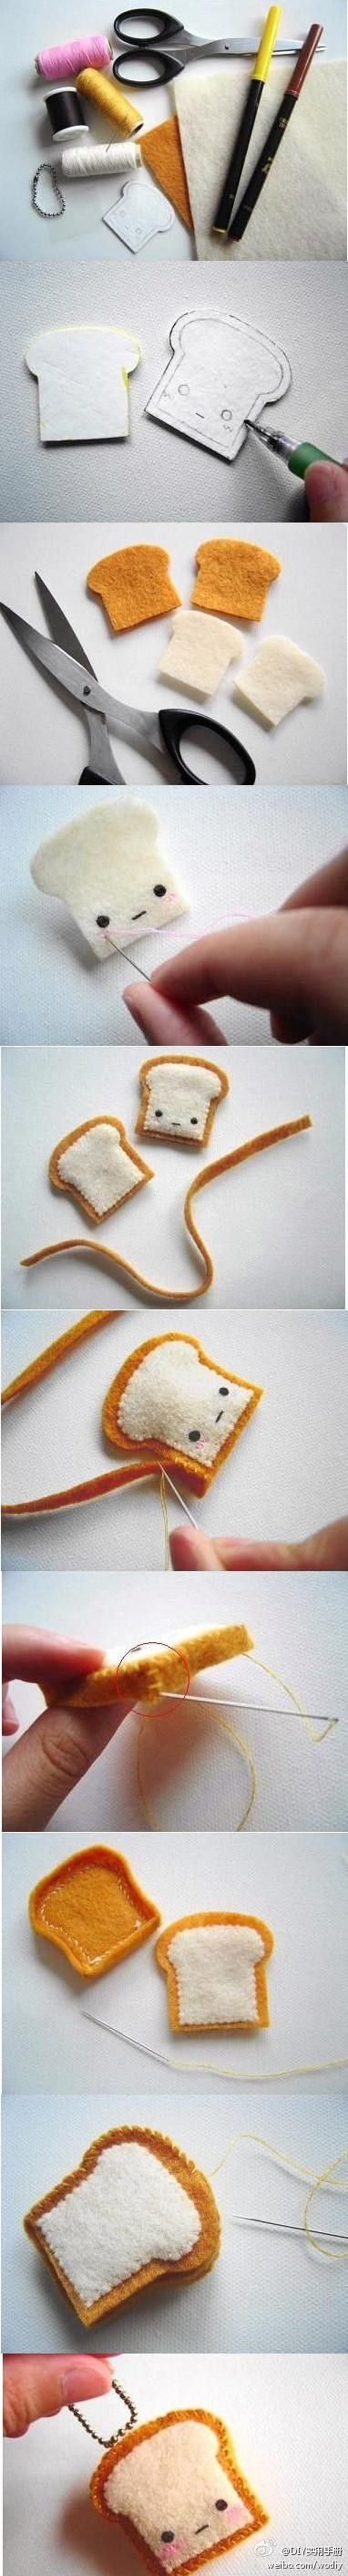 DIY toast kawaii